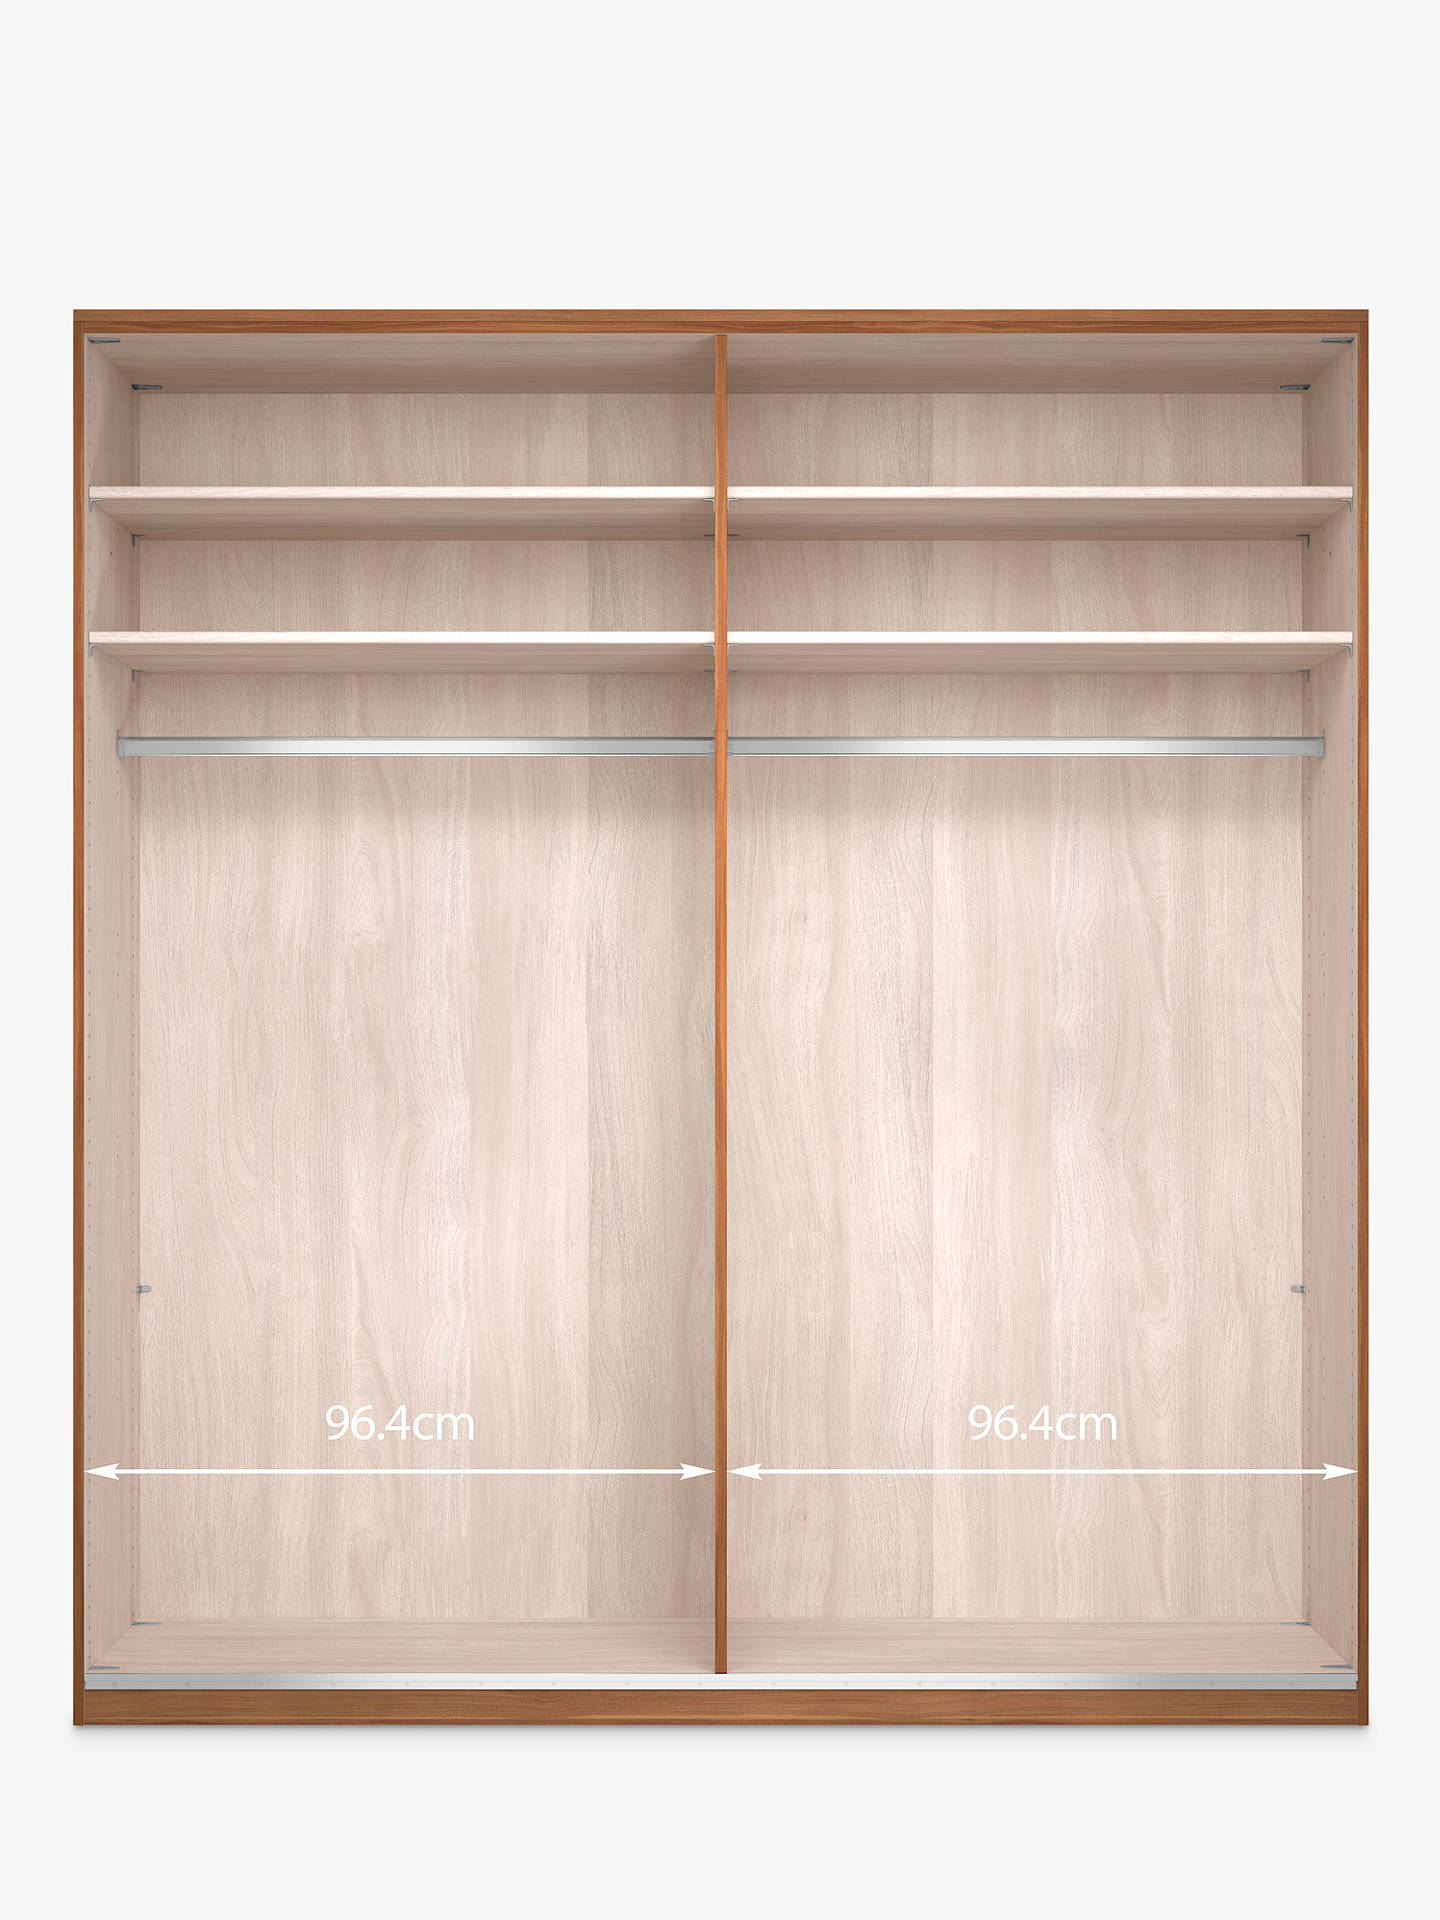 Buy John Lewis & Partners Elstra 200cm Wardrobe with Glass Hinged Doors, White Glass/Light Rustic Oak Online at johnlewis.com